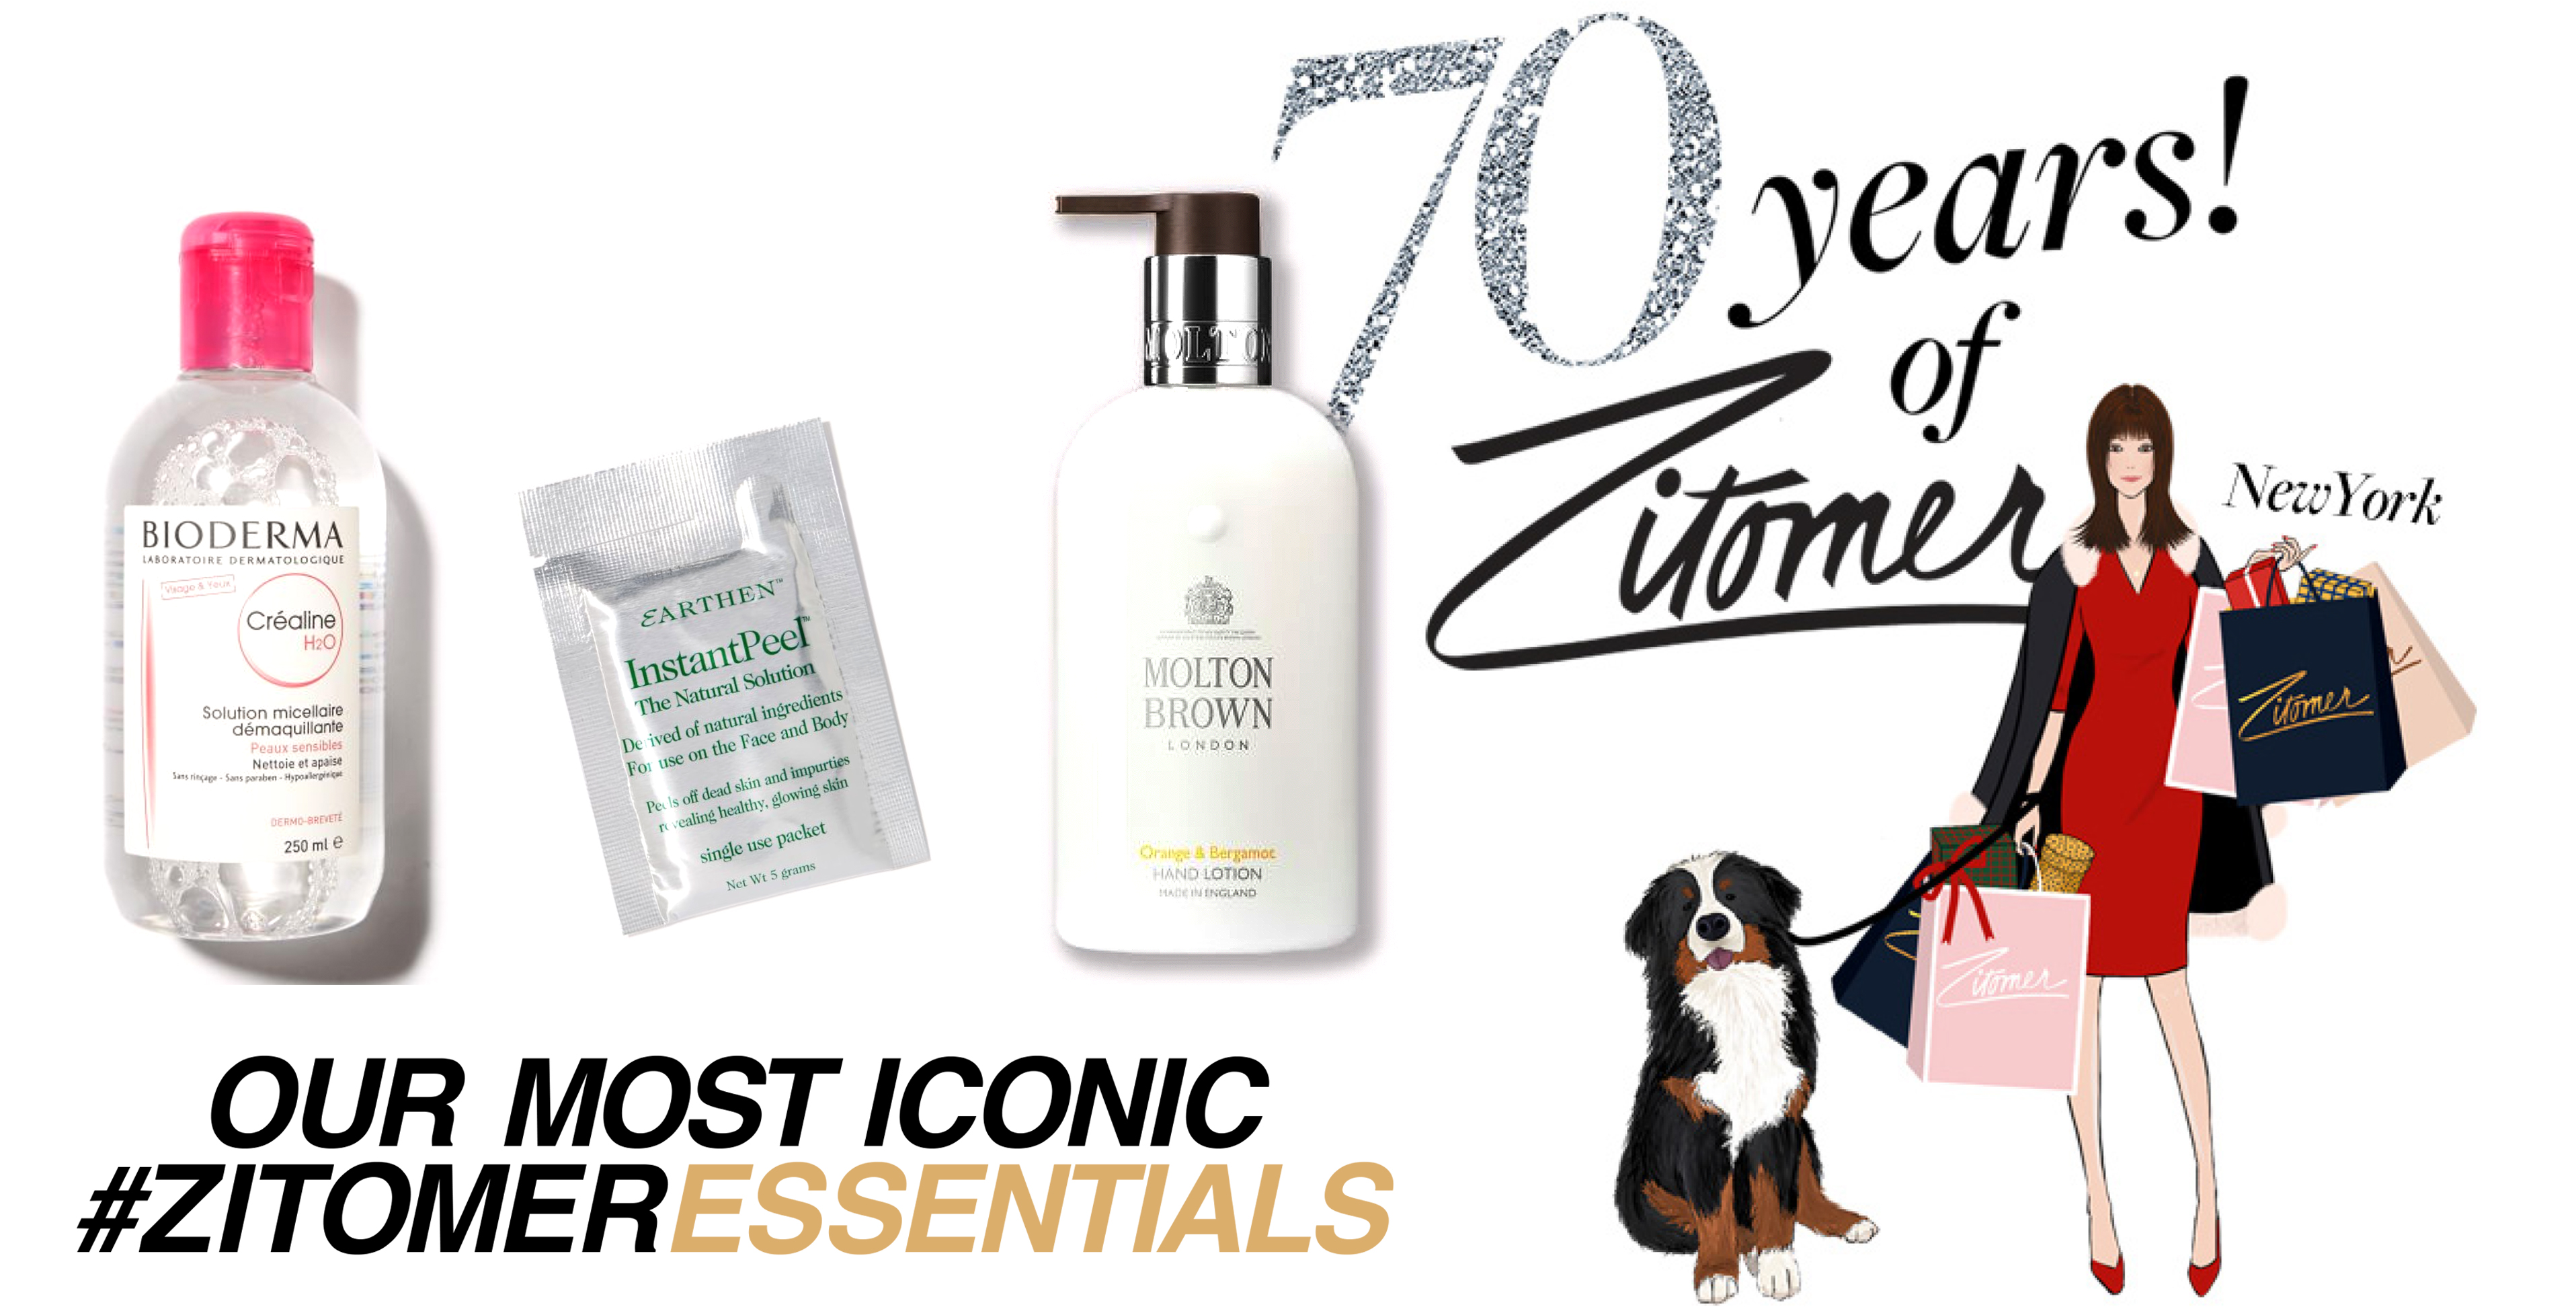 Blog 70 YEARS OF BEAUTY & BEYOND